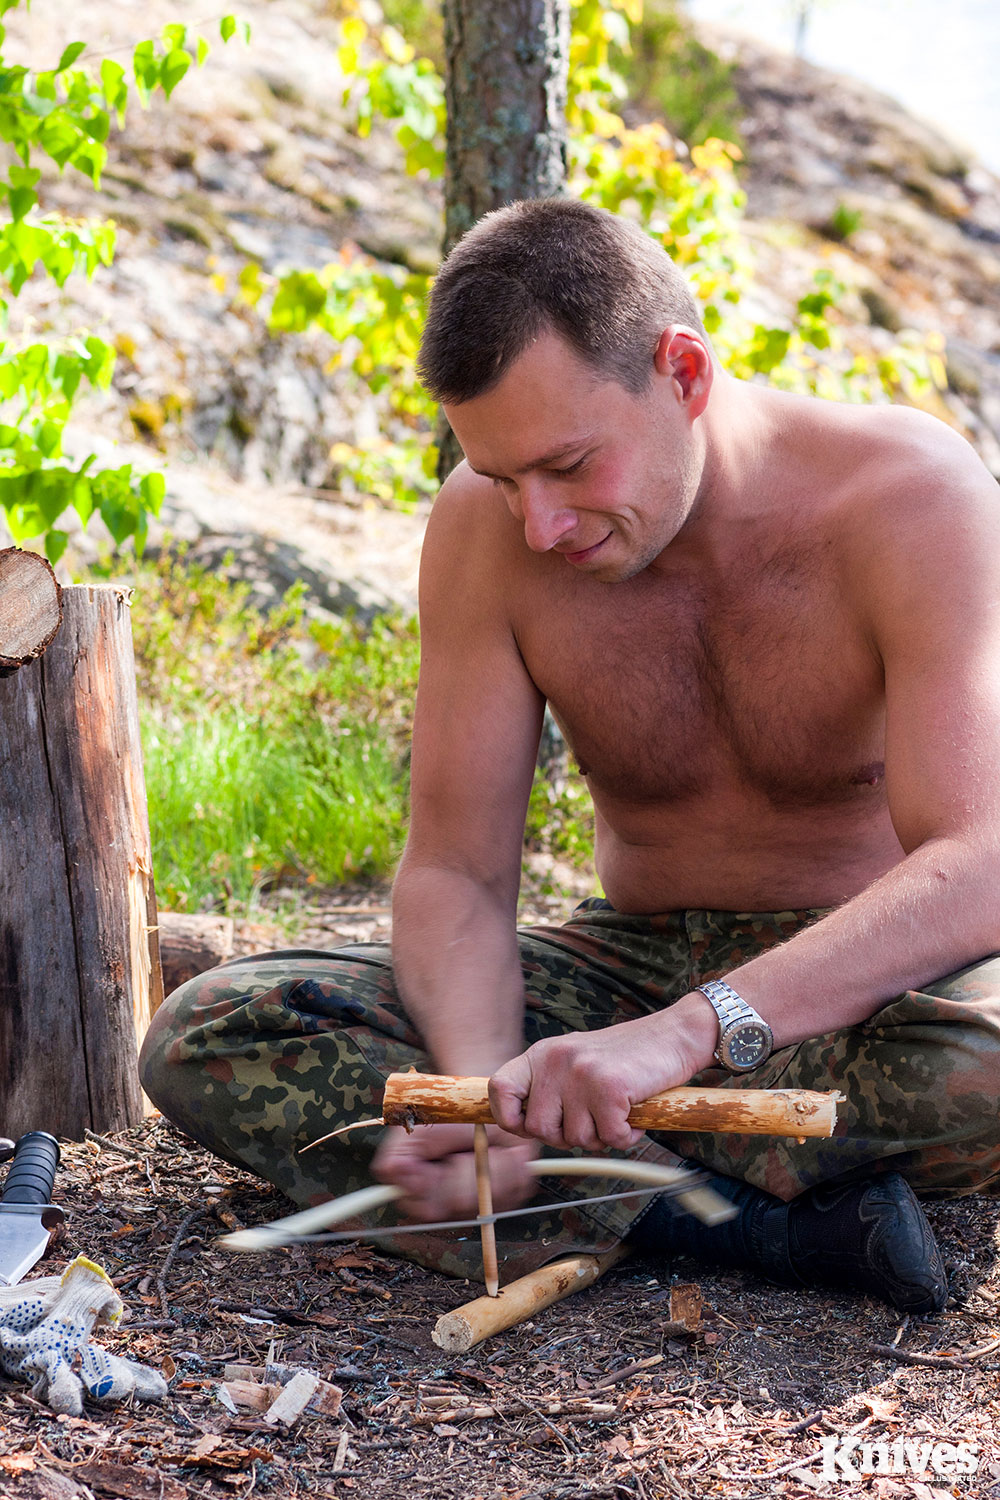 Survival knife will indirectly aid in you having a fire during a cold night, by whittling down the pieces of wood to create a bow drill. Argument/Depositphotos.com photo.